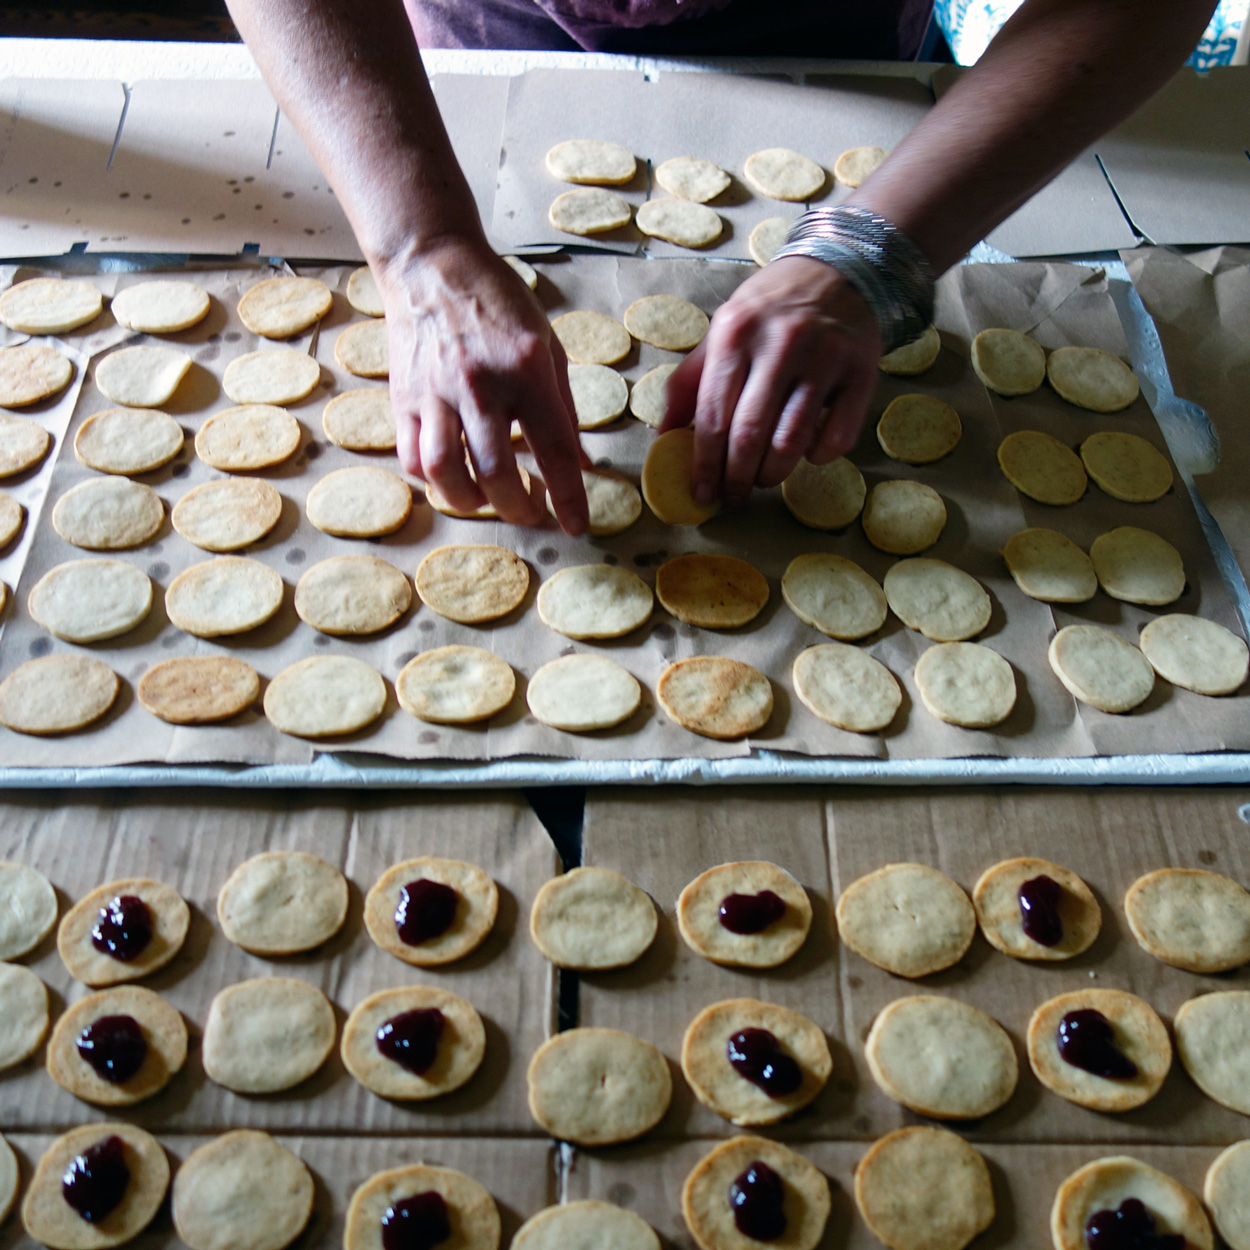 After they are lined up, turn one row over so you are filling the baked side with jam. Then the outside of the cookie looks nice when sandwiched together.   Photo credit:    asithappens.format.com